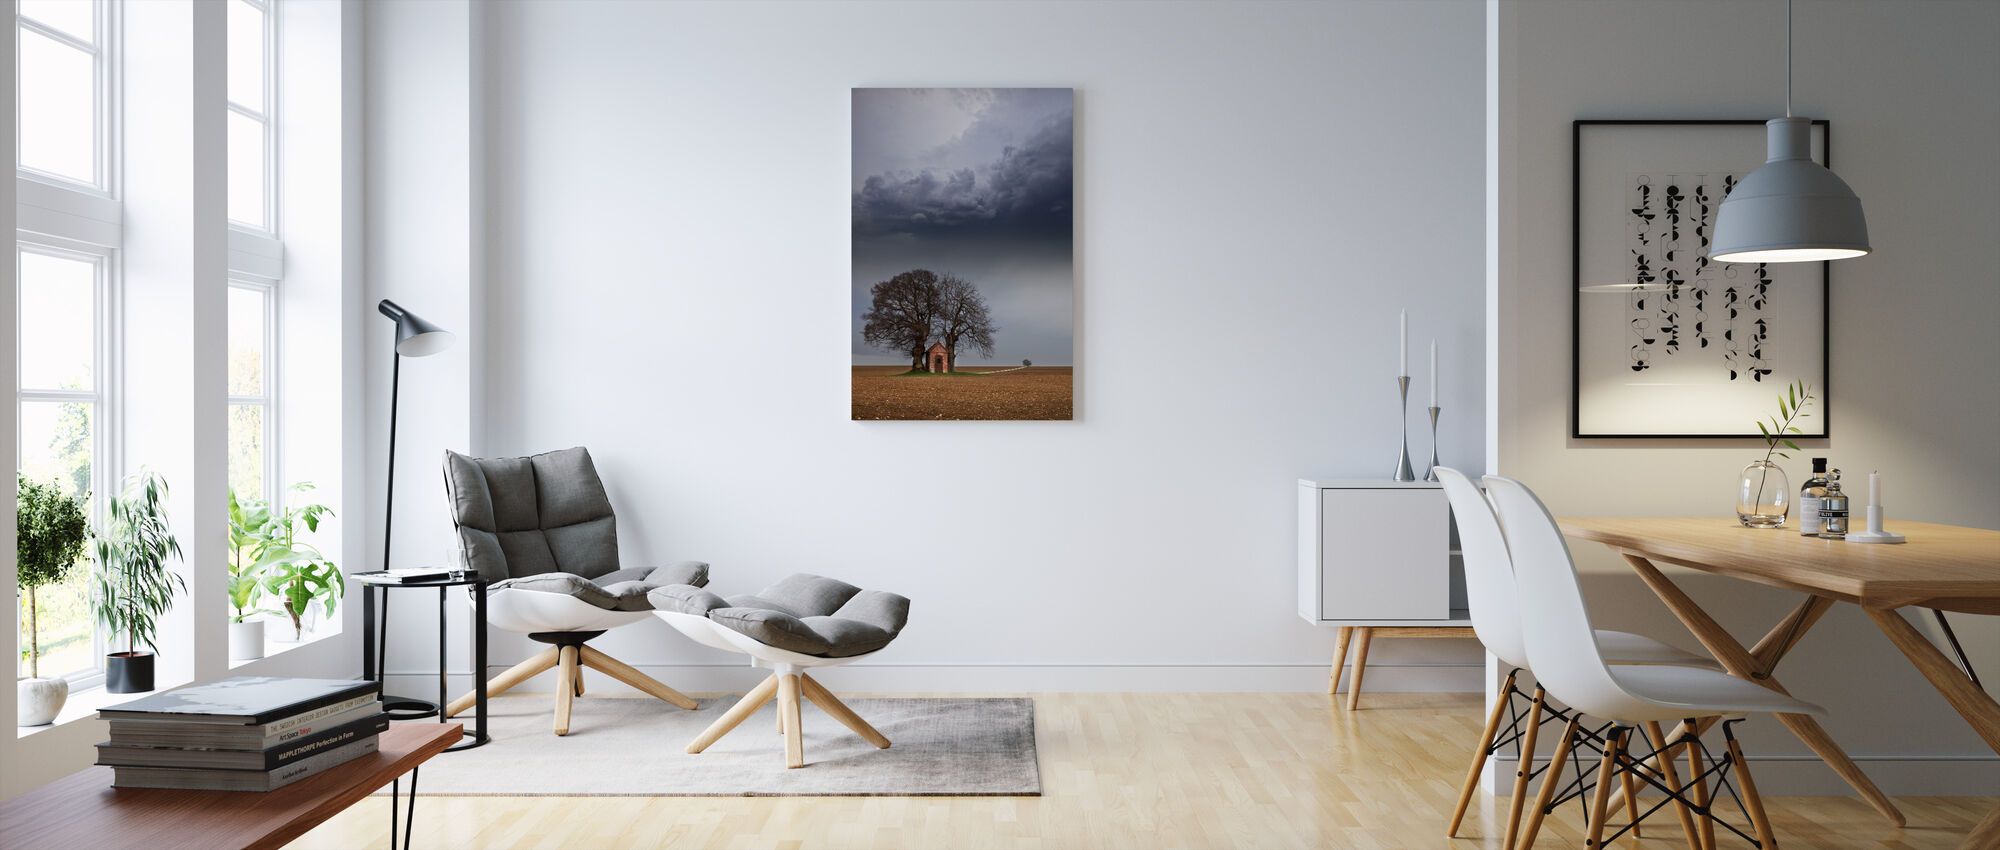 Lonely House - Canvas print - Living Room